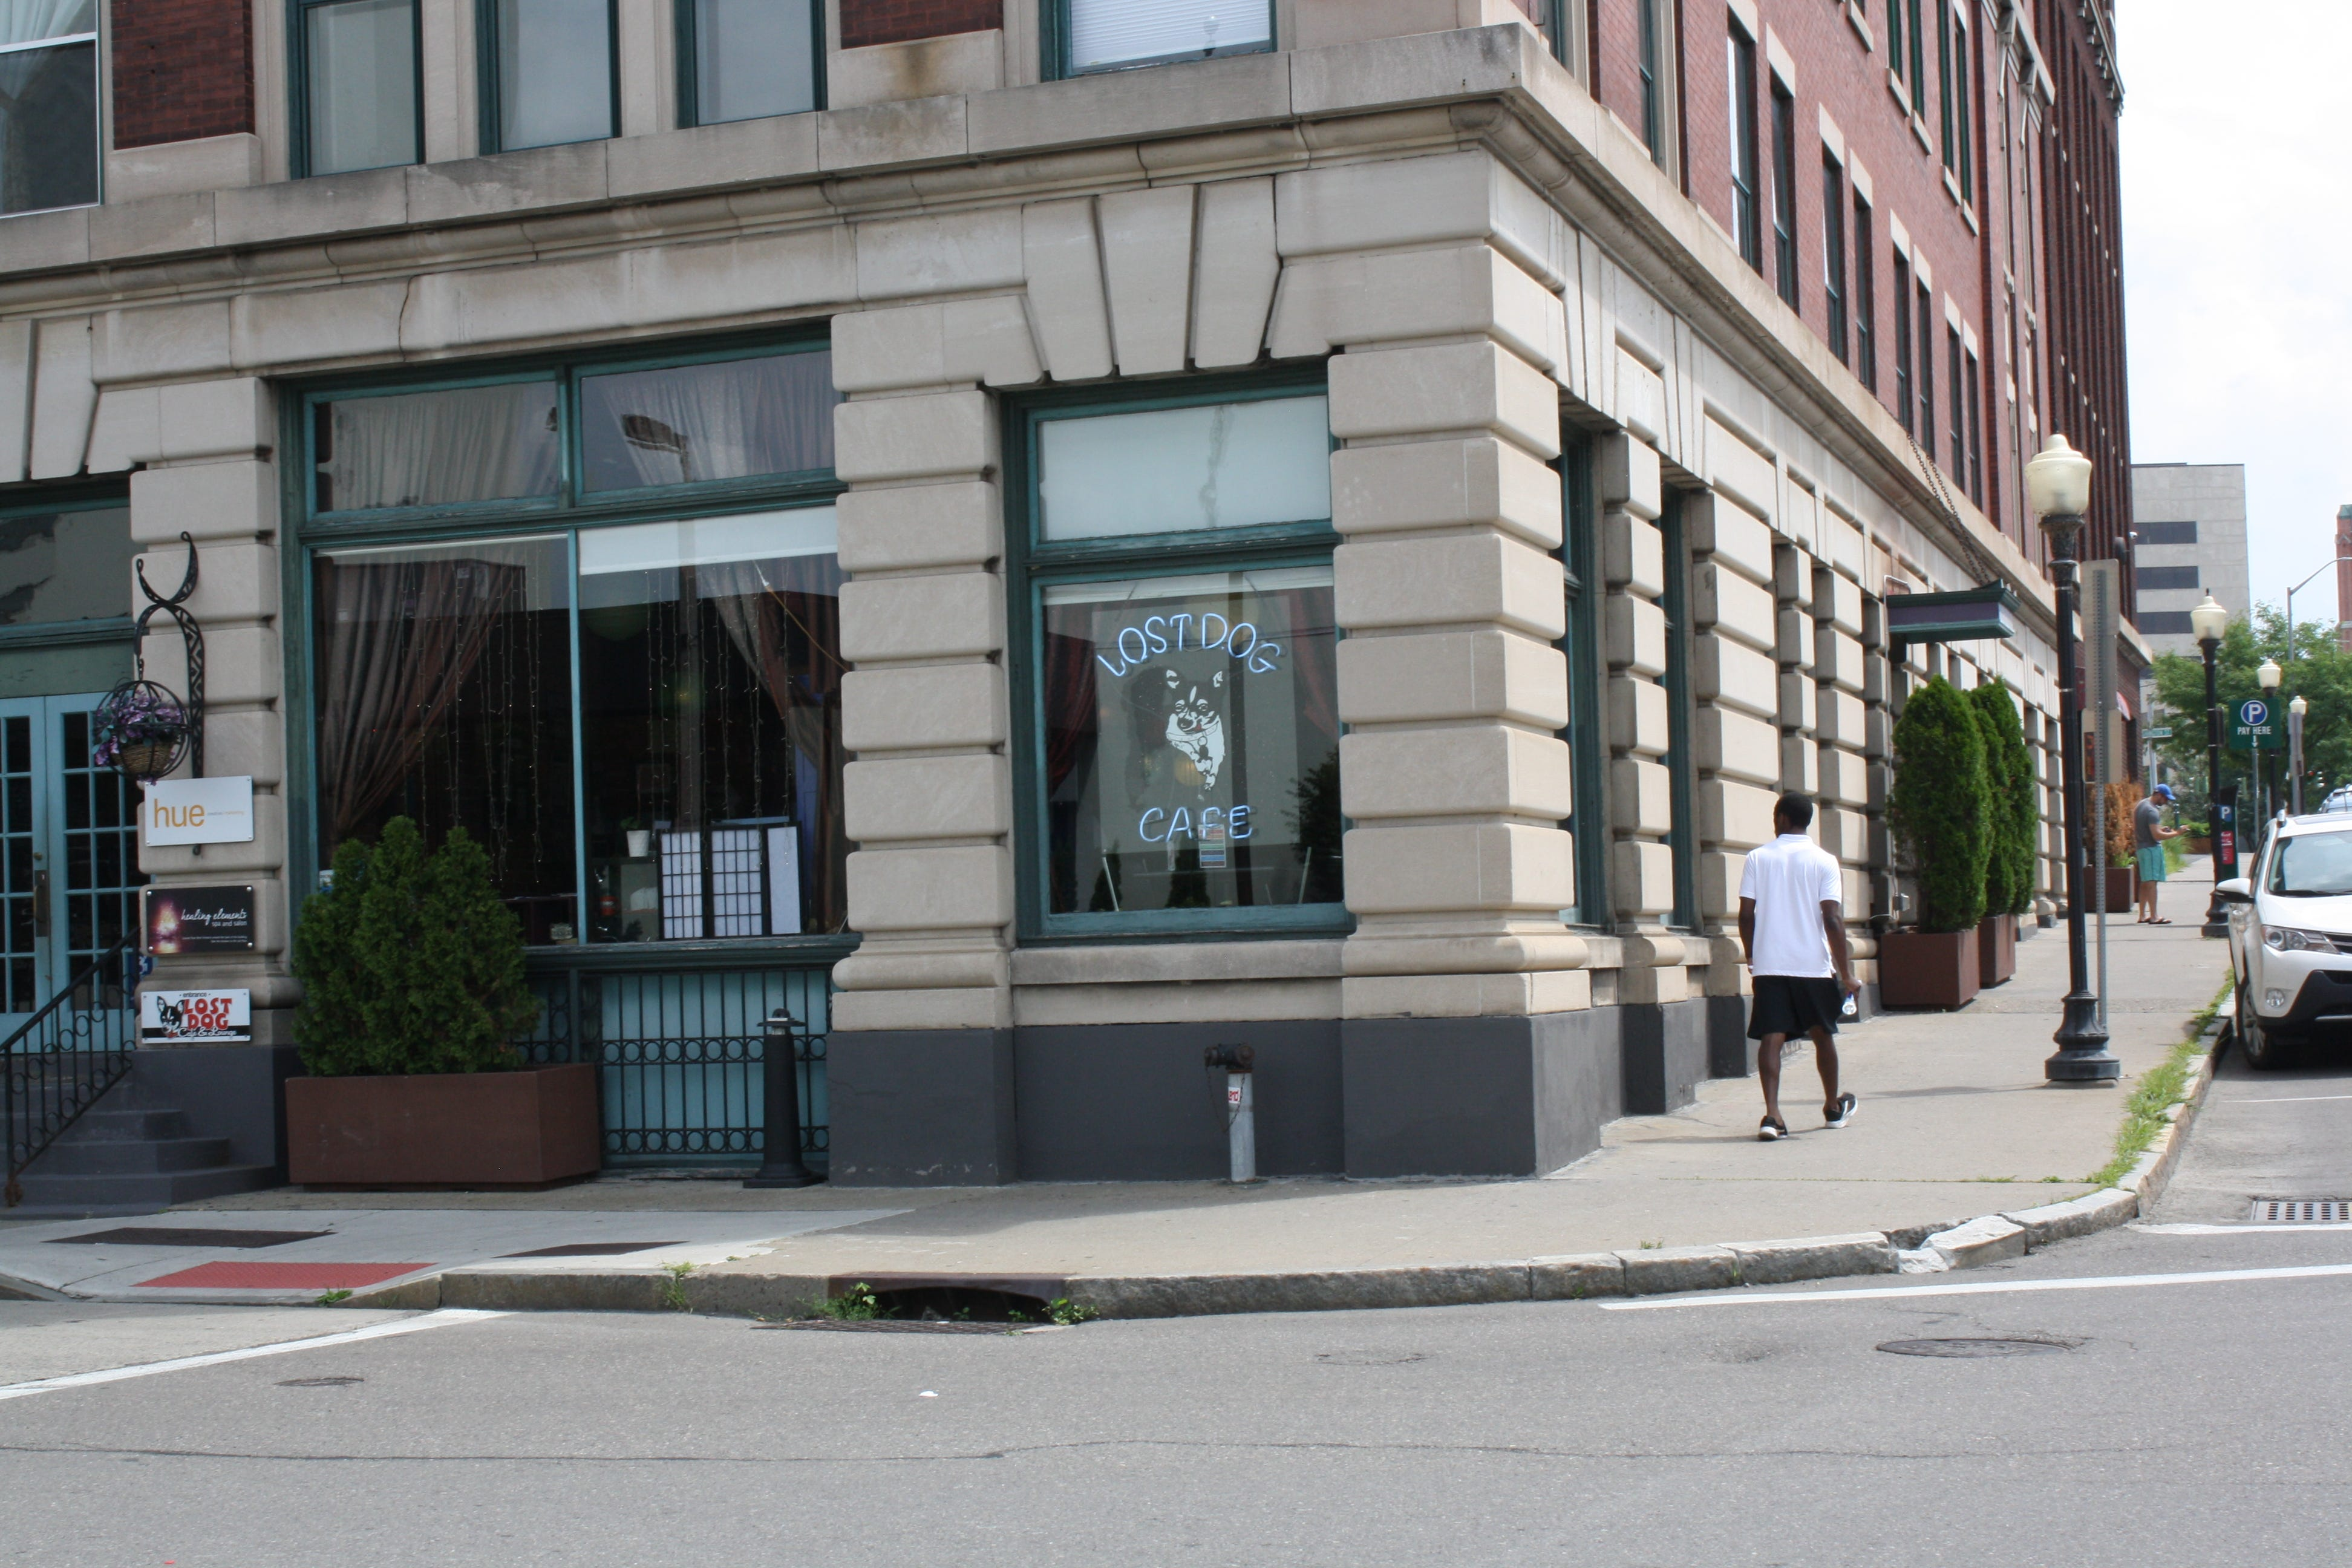 The Lost Dog Cafe & Lounge is located on 222 Water Street in Binghamton.